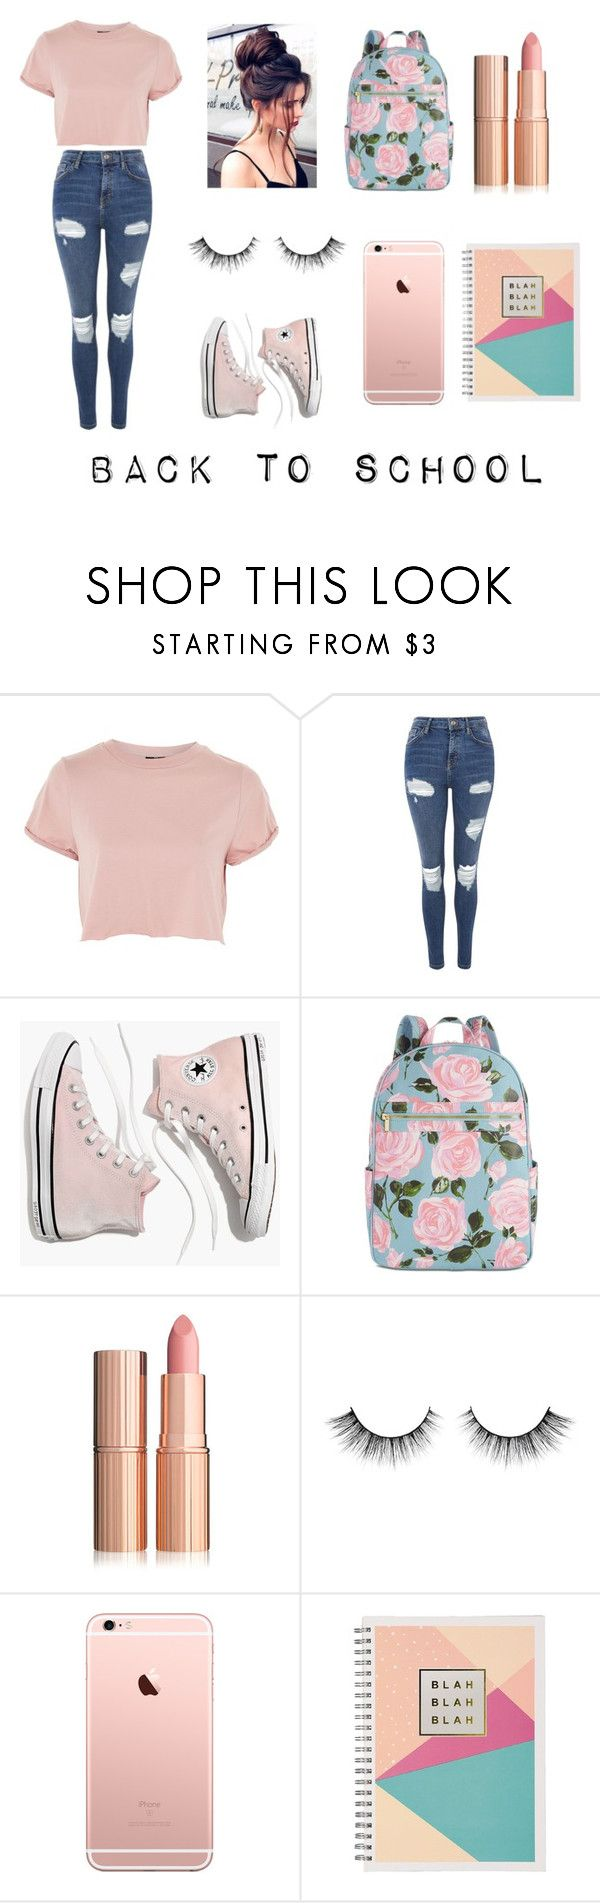 """""""Back to school"""" by carol-gegenheimer on Polyvore featuring moda, Topshop, Madewell e ban.do"""